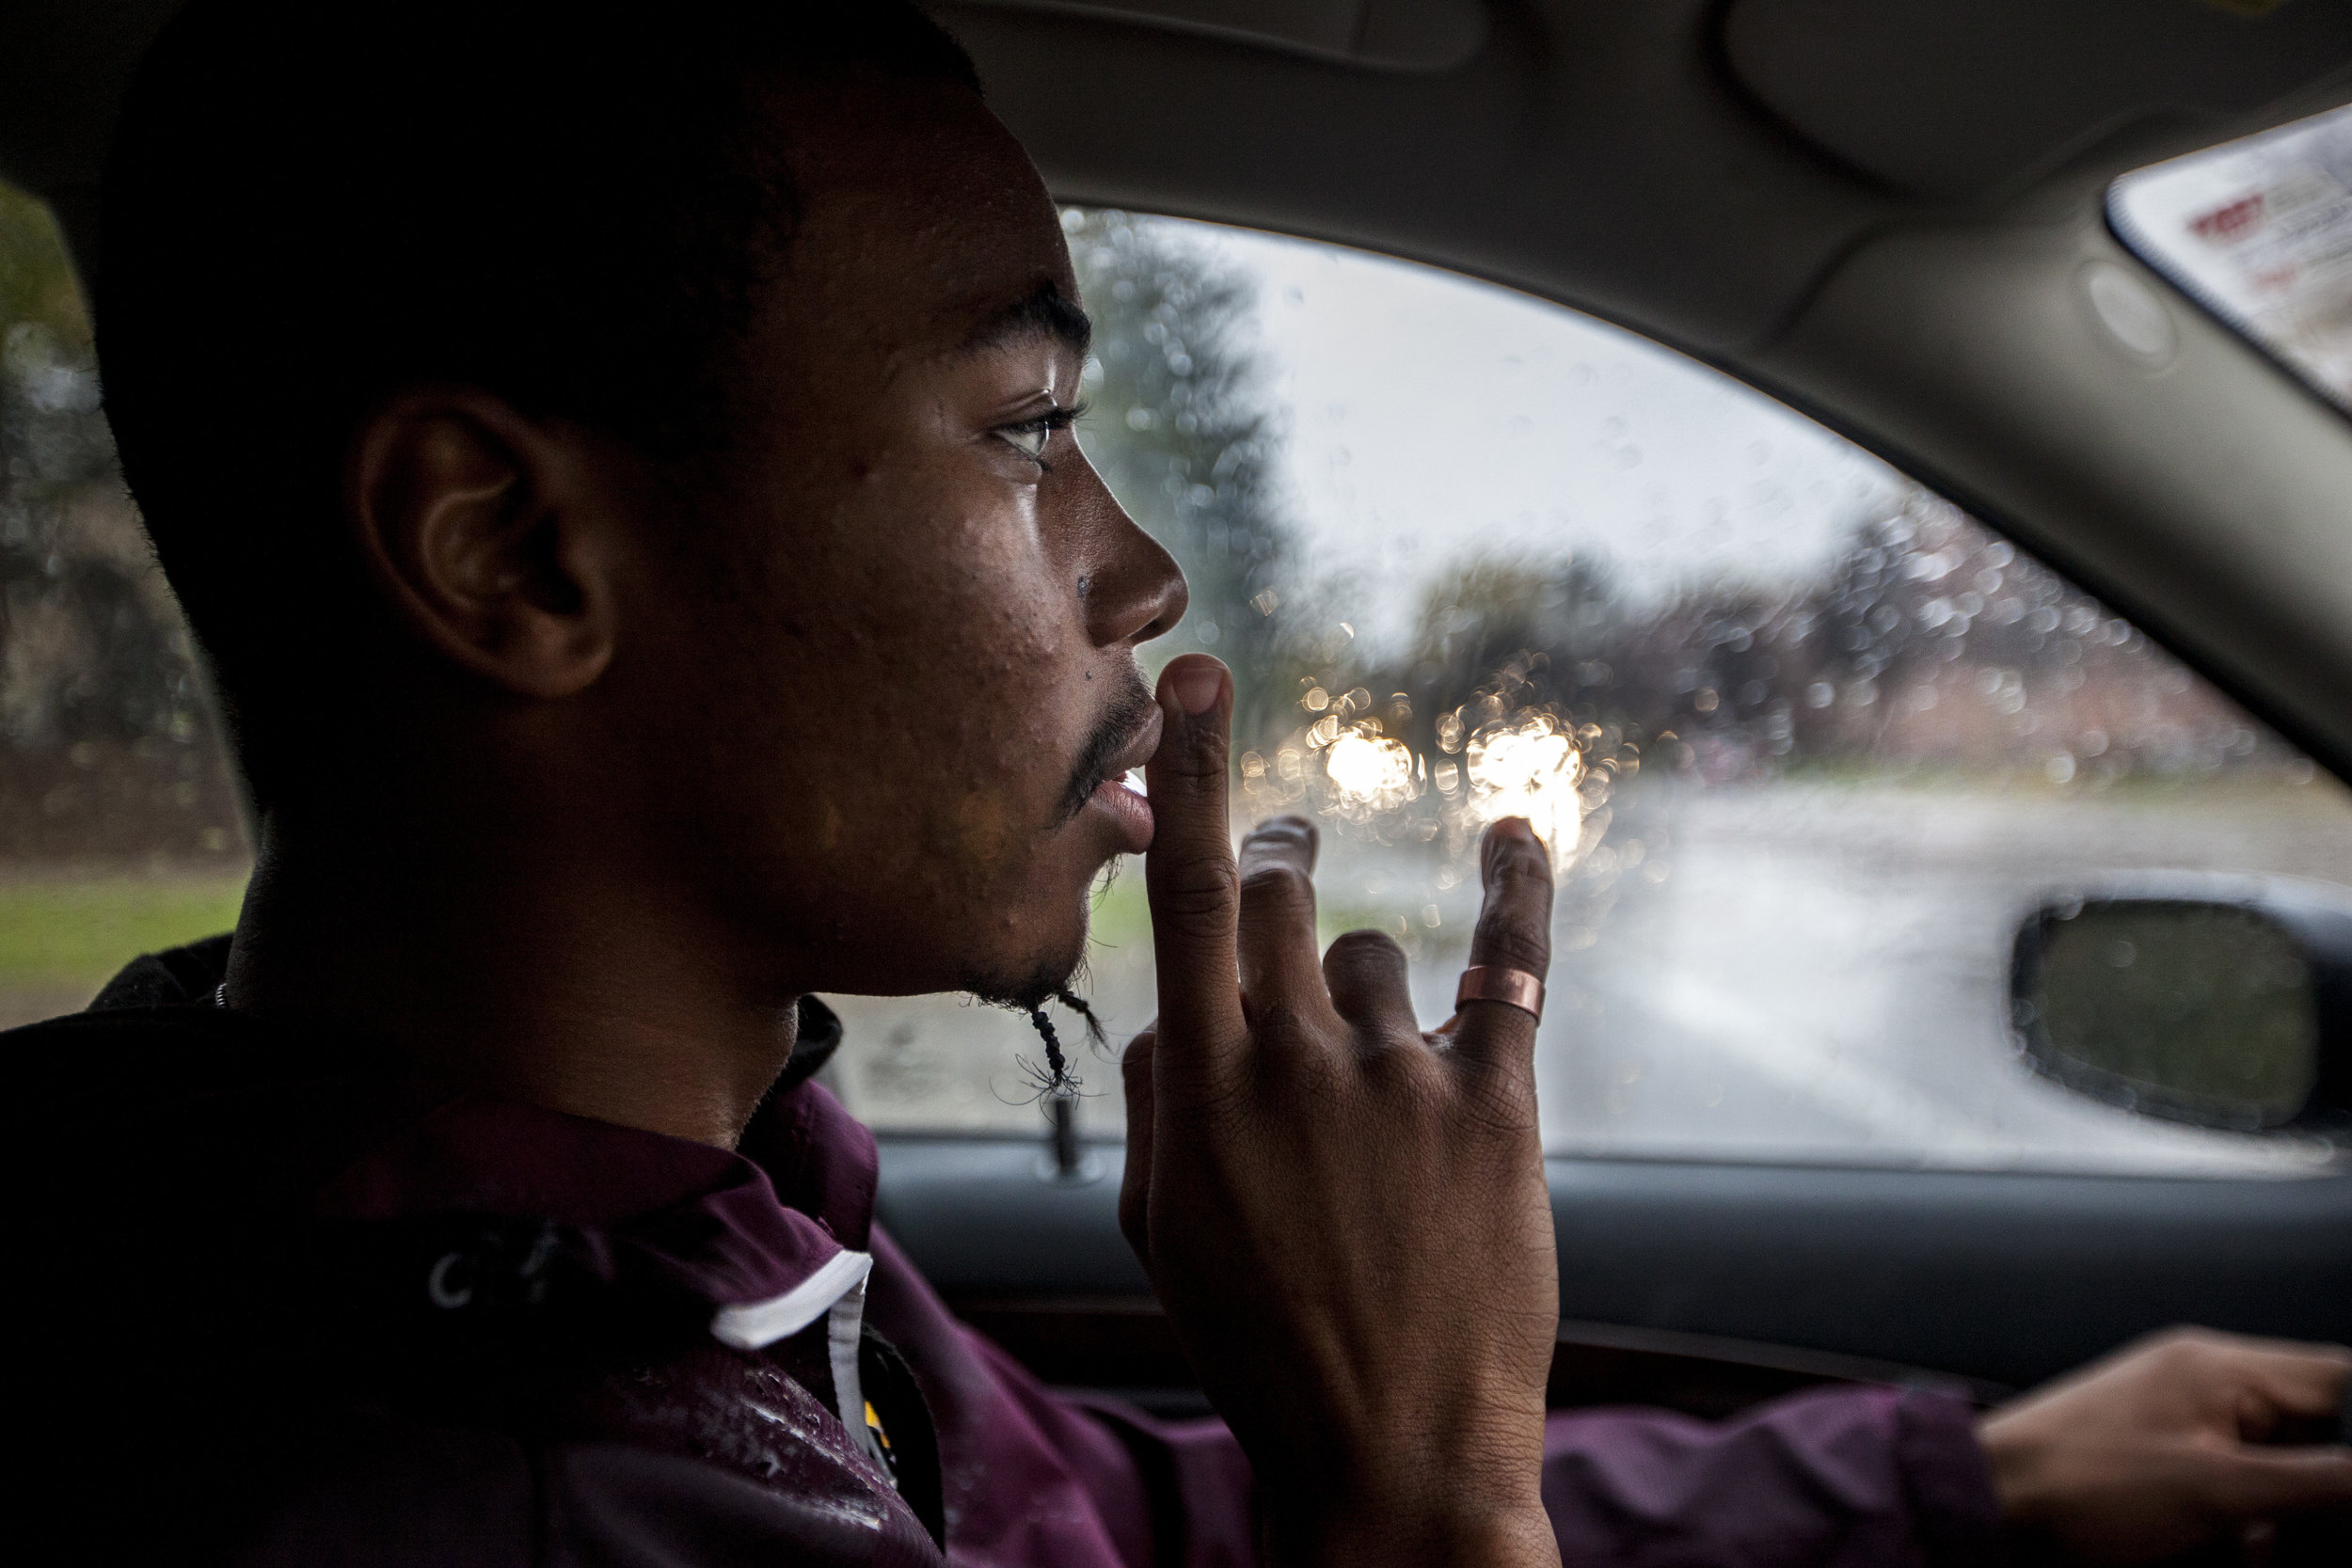 "Aaron Johnson of Brighton, Mich., ponders as he drives back to his apartment following class at Central Michigan University in Mt. Pleasant, Mich. As a musician and rapper, Johnson uses his platform of music to make a difference. ""I have a responsibility to speak up on this… (but) there's a lot of grace that has to be involved,"" says Johnson."